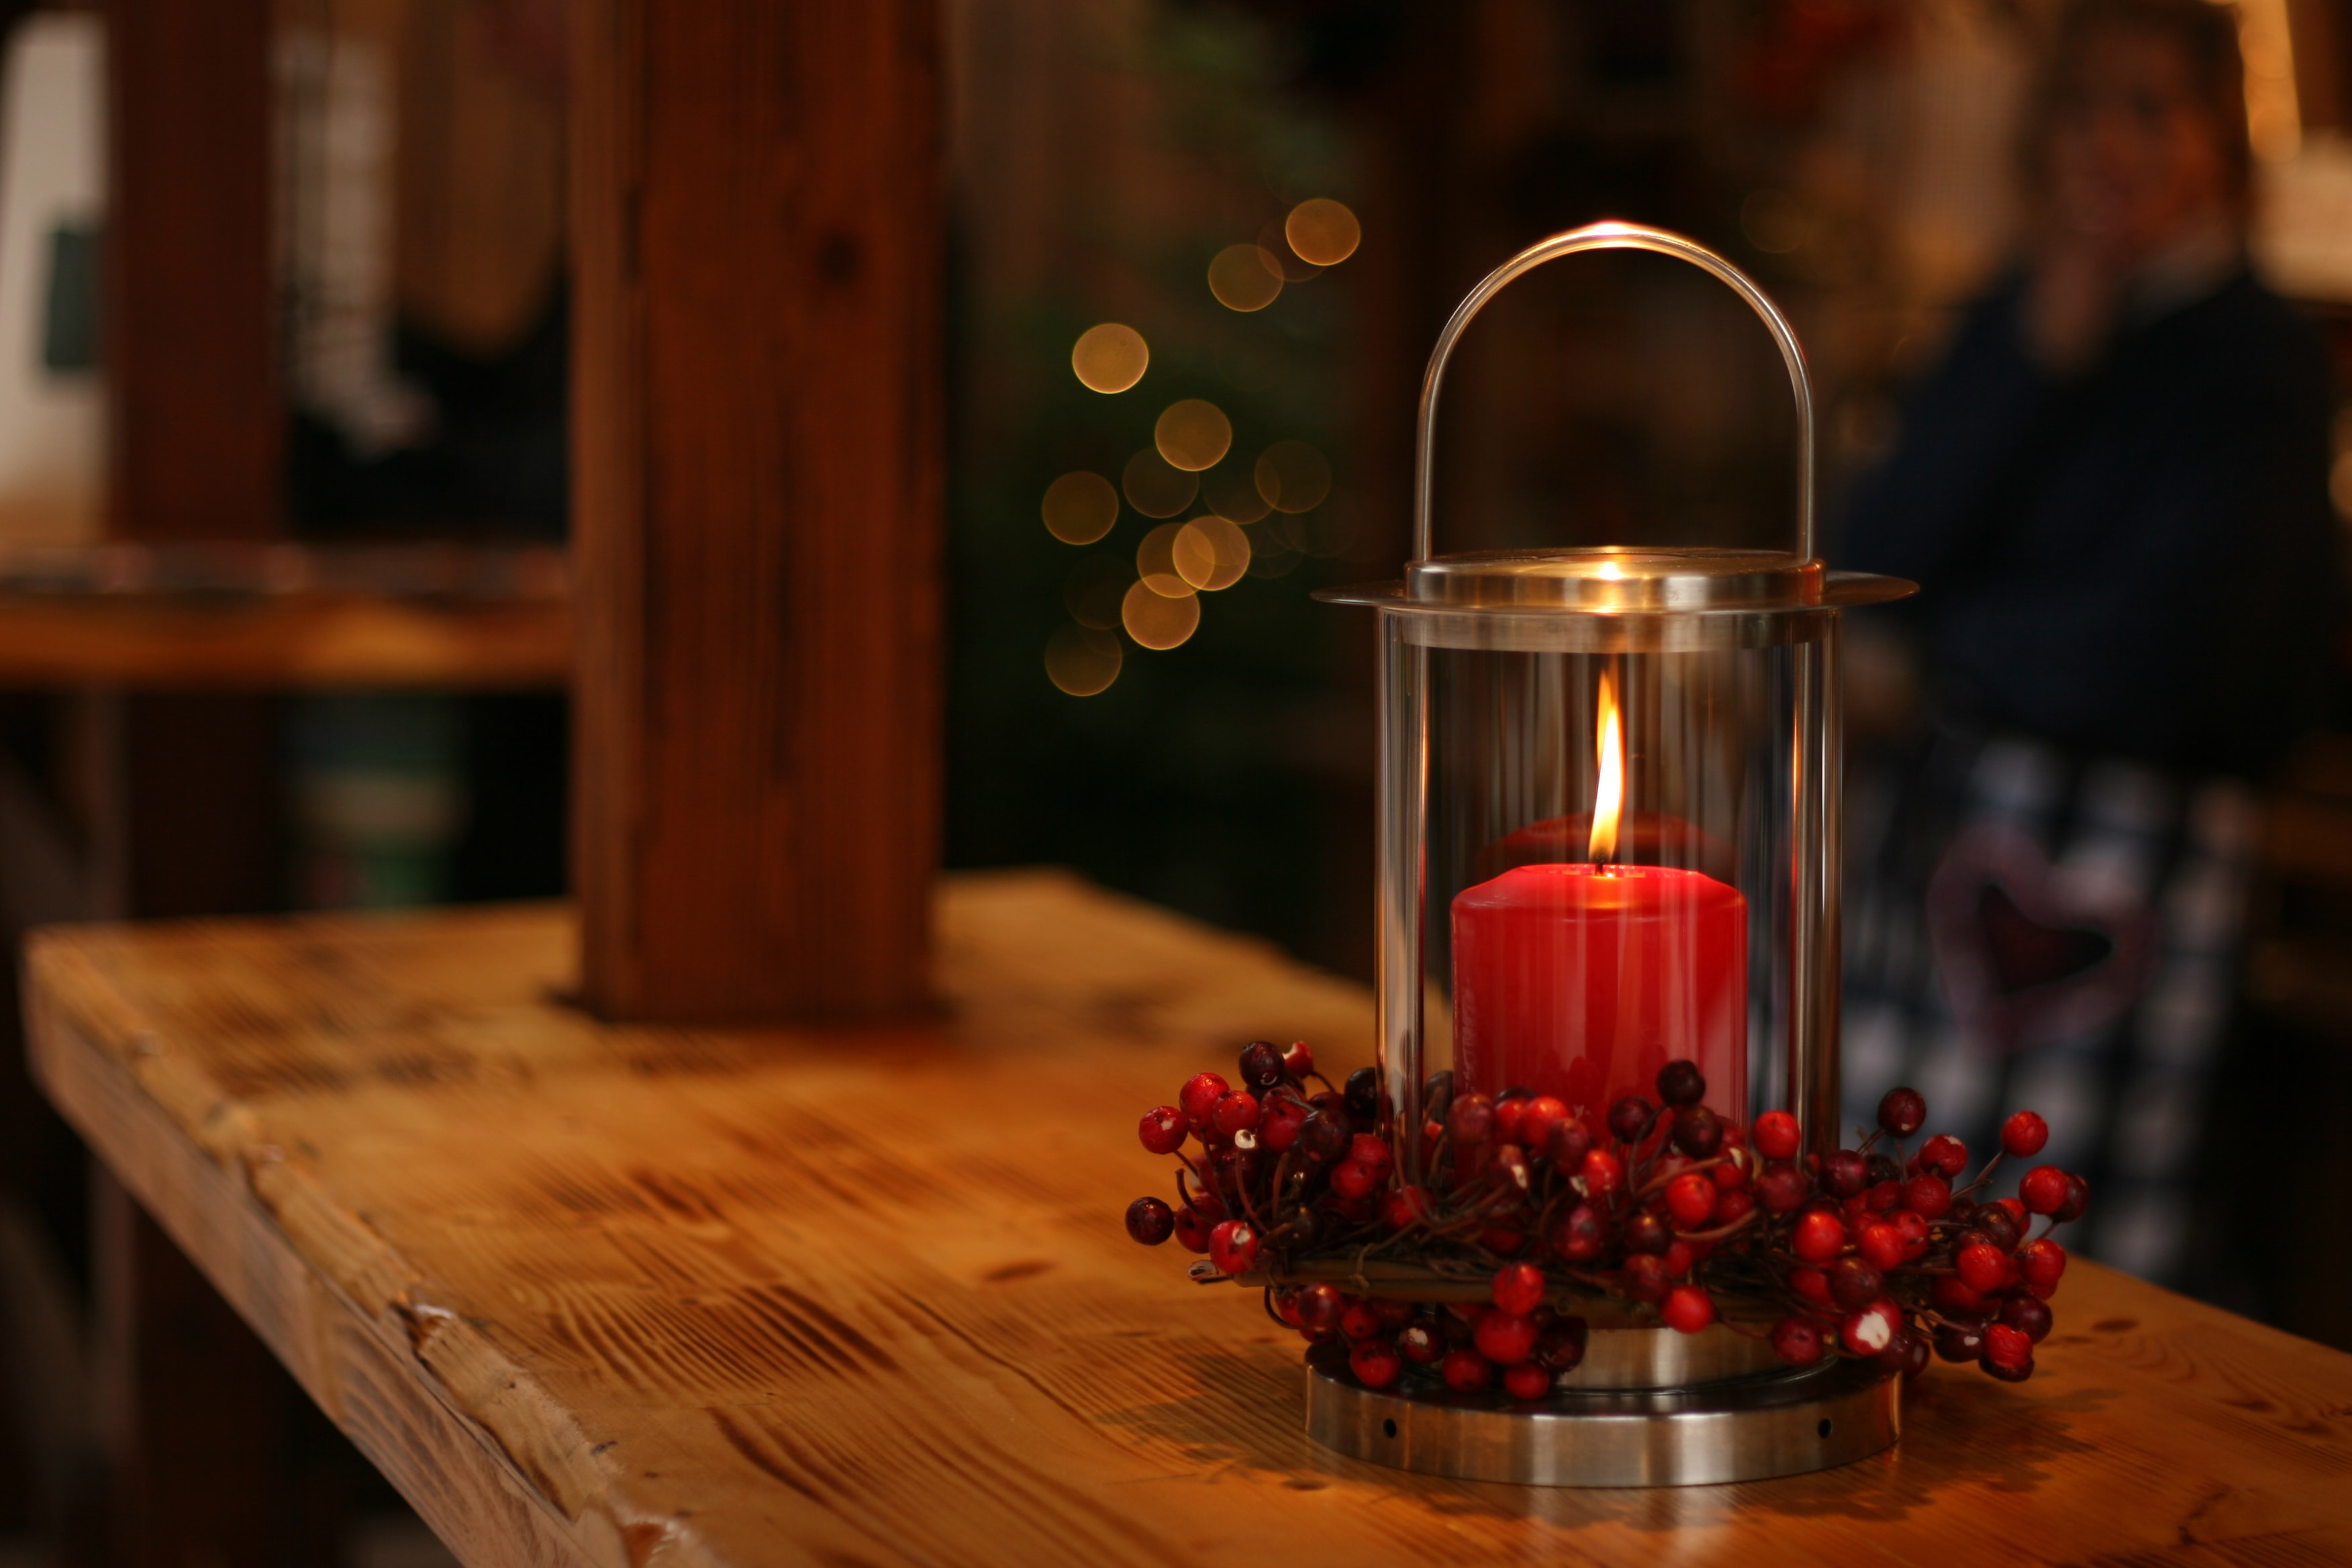 DIY Christmas Decorations Advent Calendar Festive Holiday Home Decoration Crafts christmas scent rustic red candle festive